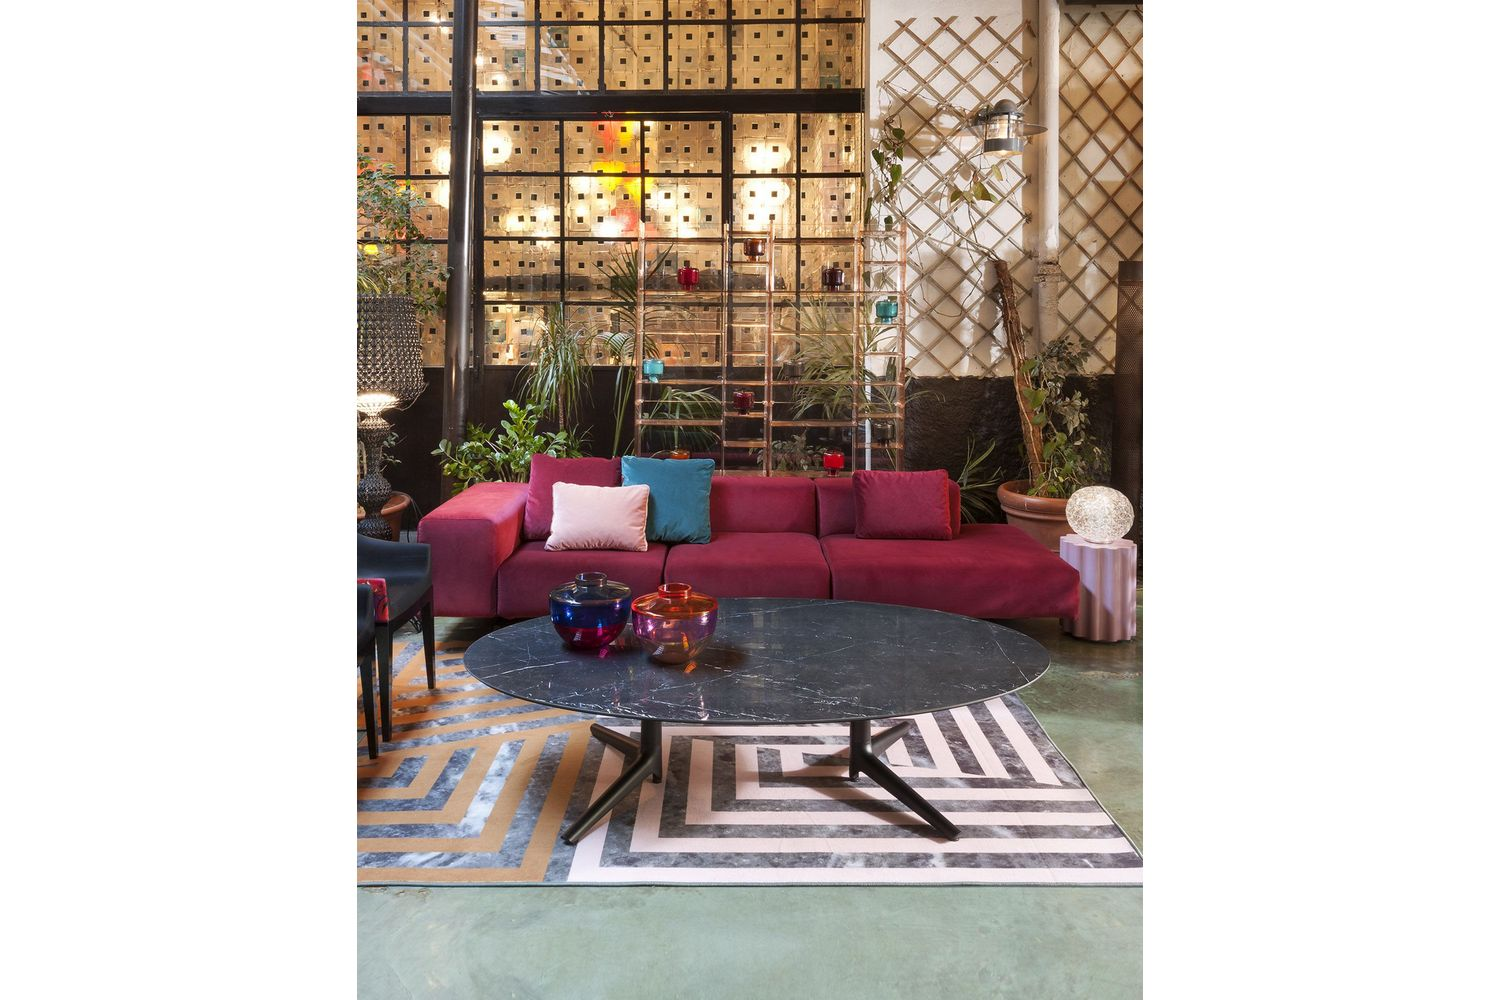 kartell sofa largo maxwell leather velluto by piero lissoni for space